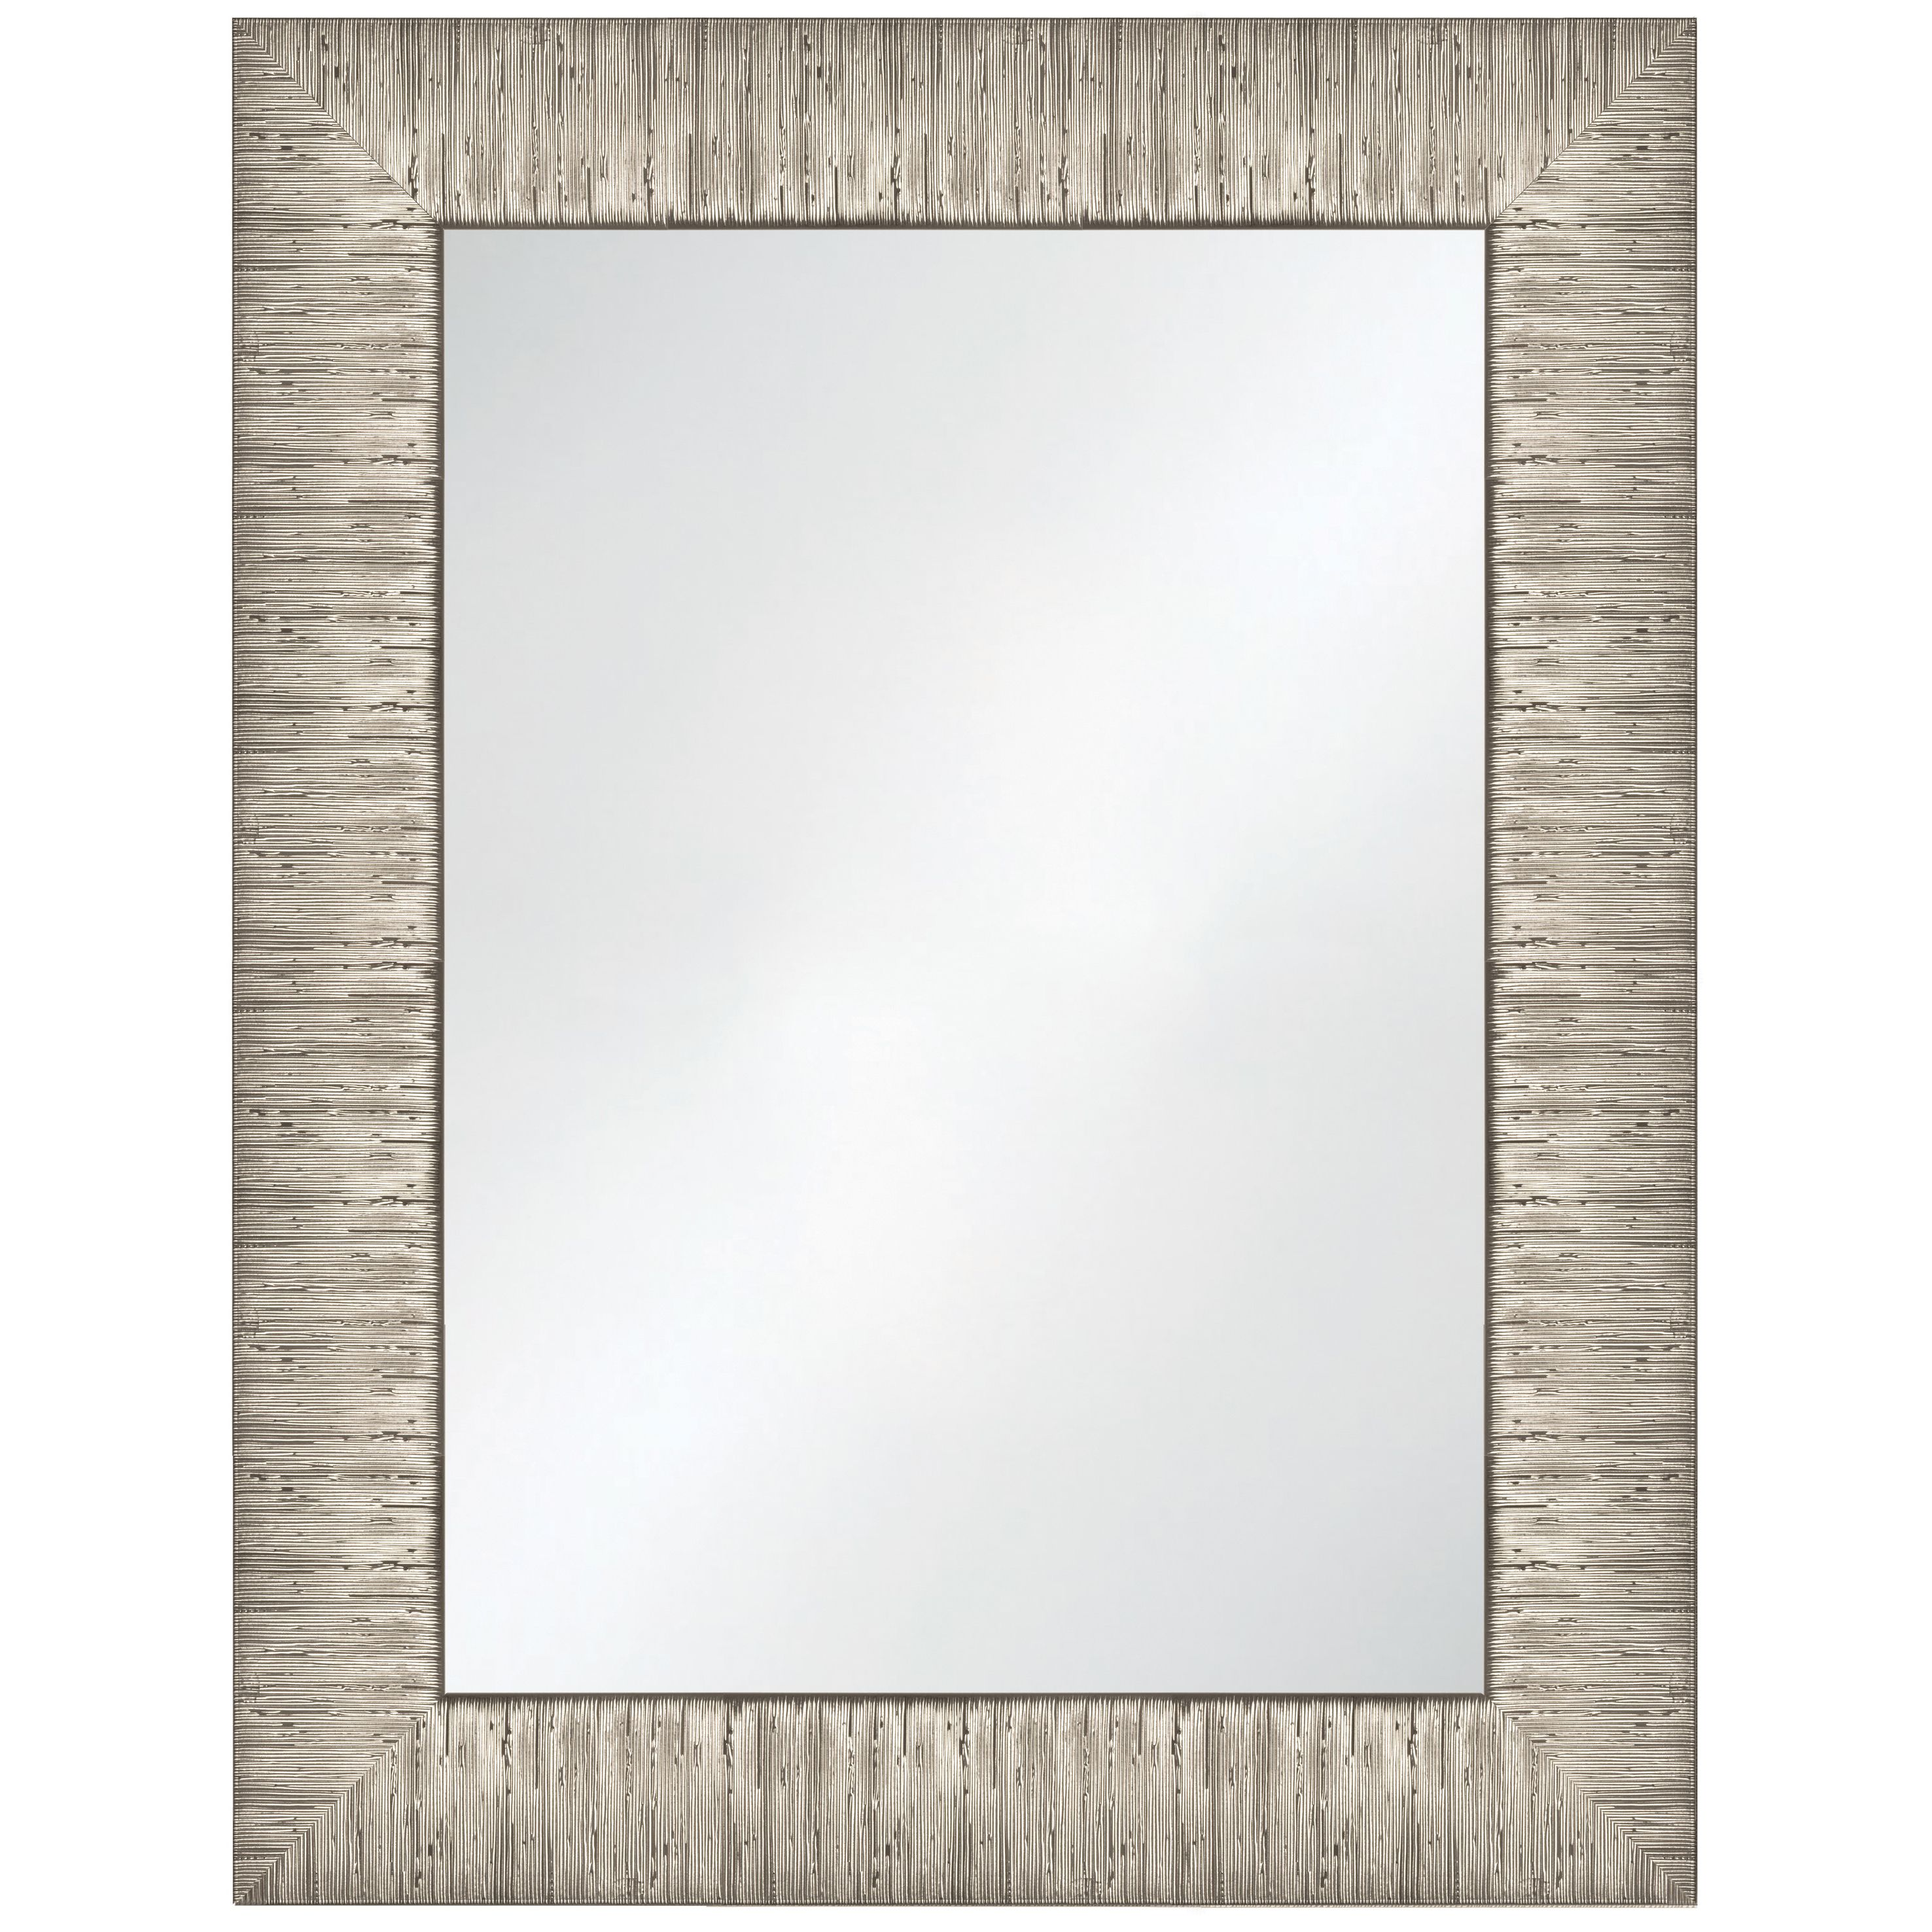 Selections by chaumont waterford gold ribbed texture frame wall selections by chaumont waterford gold ribbed texture frame wall mirror amipublicfo Gallery